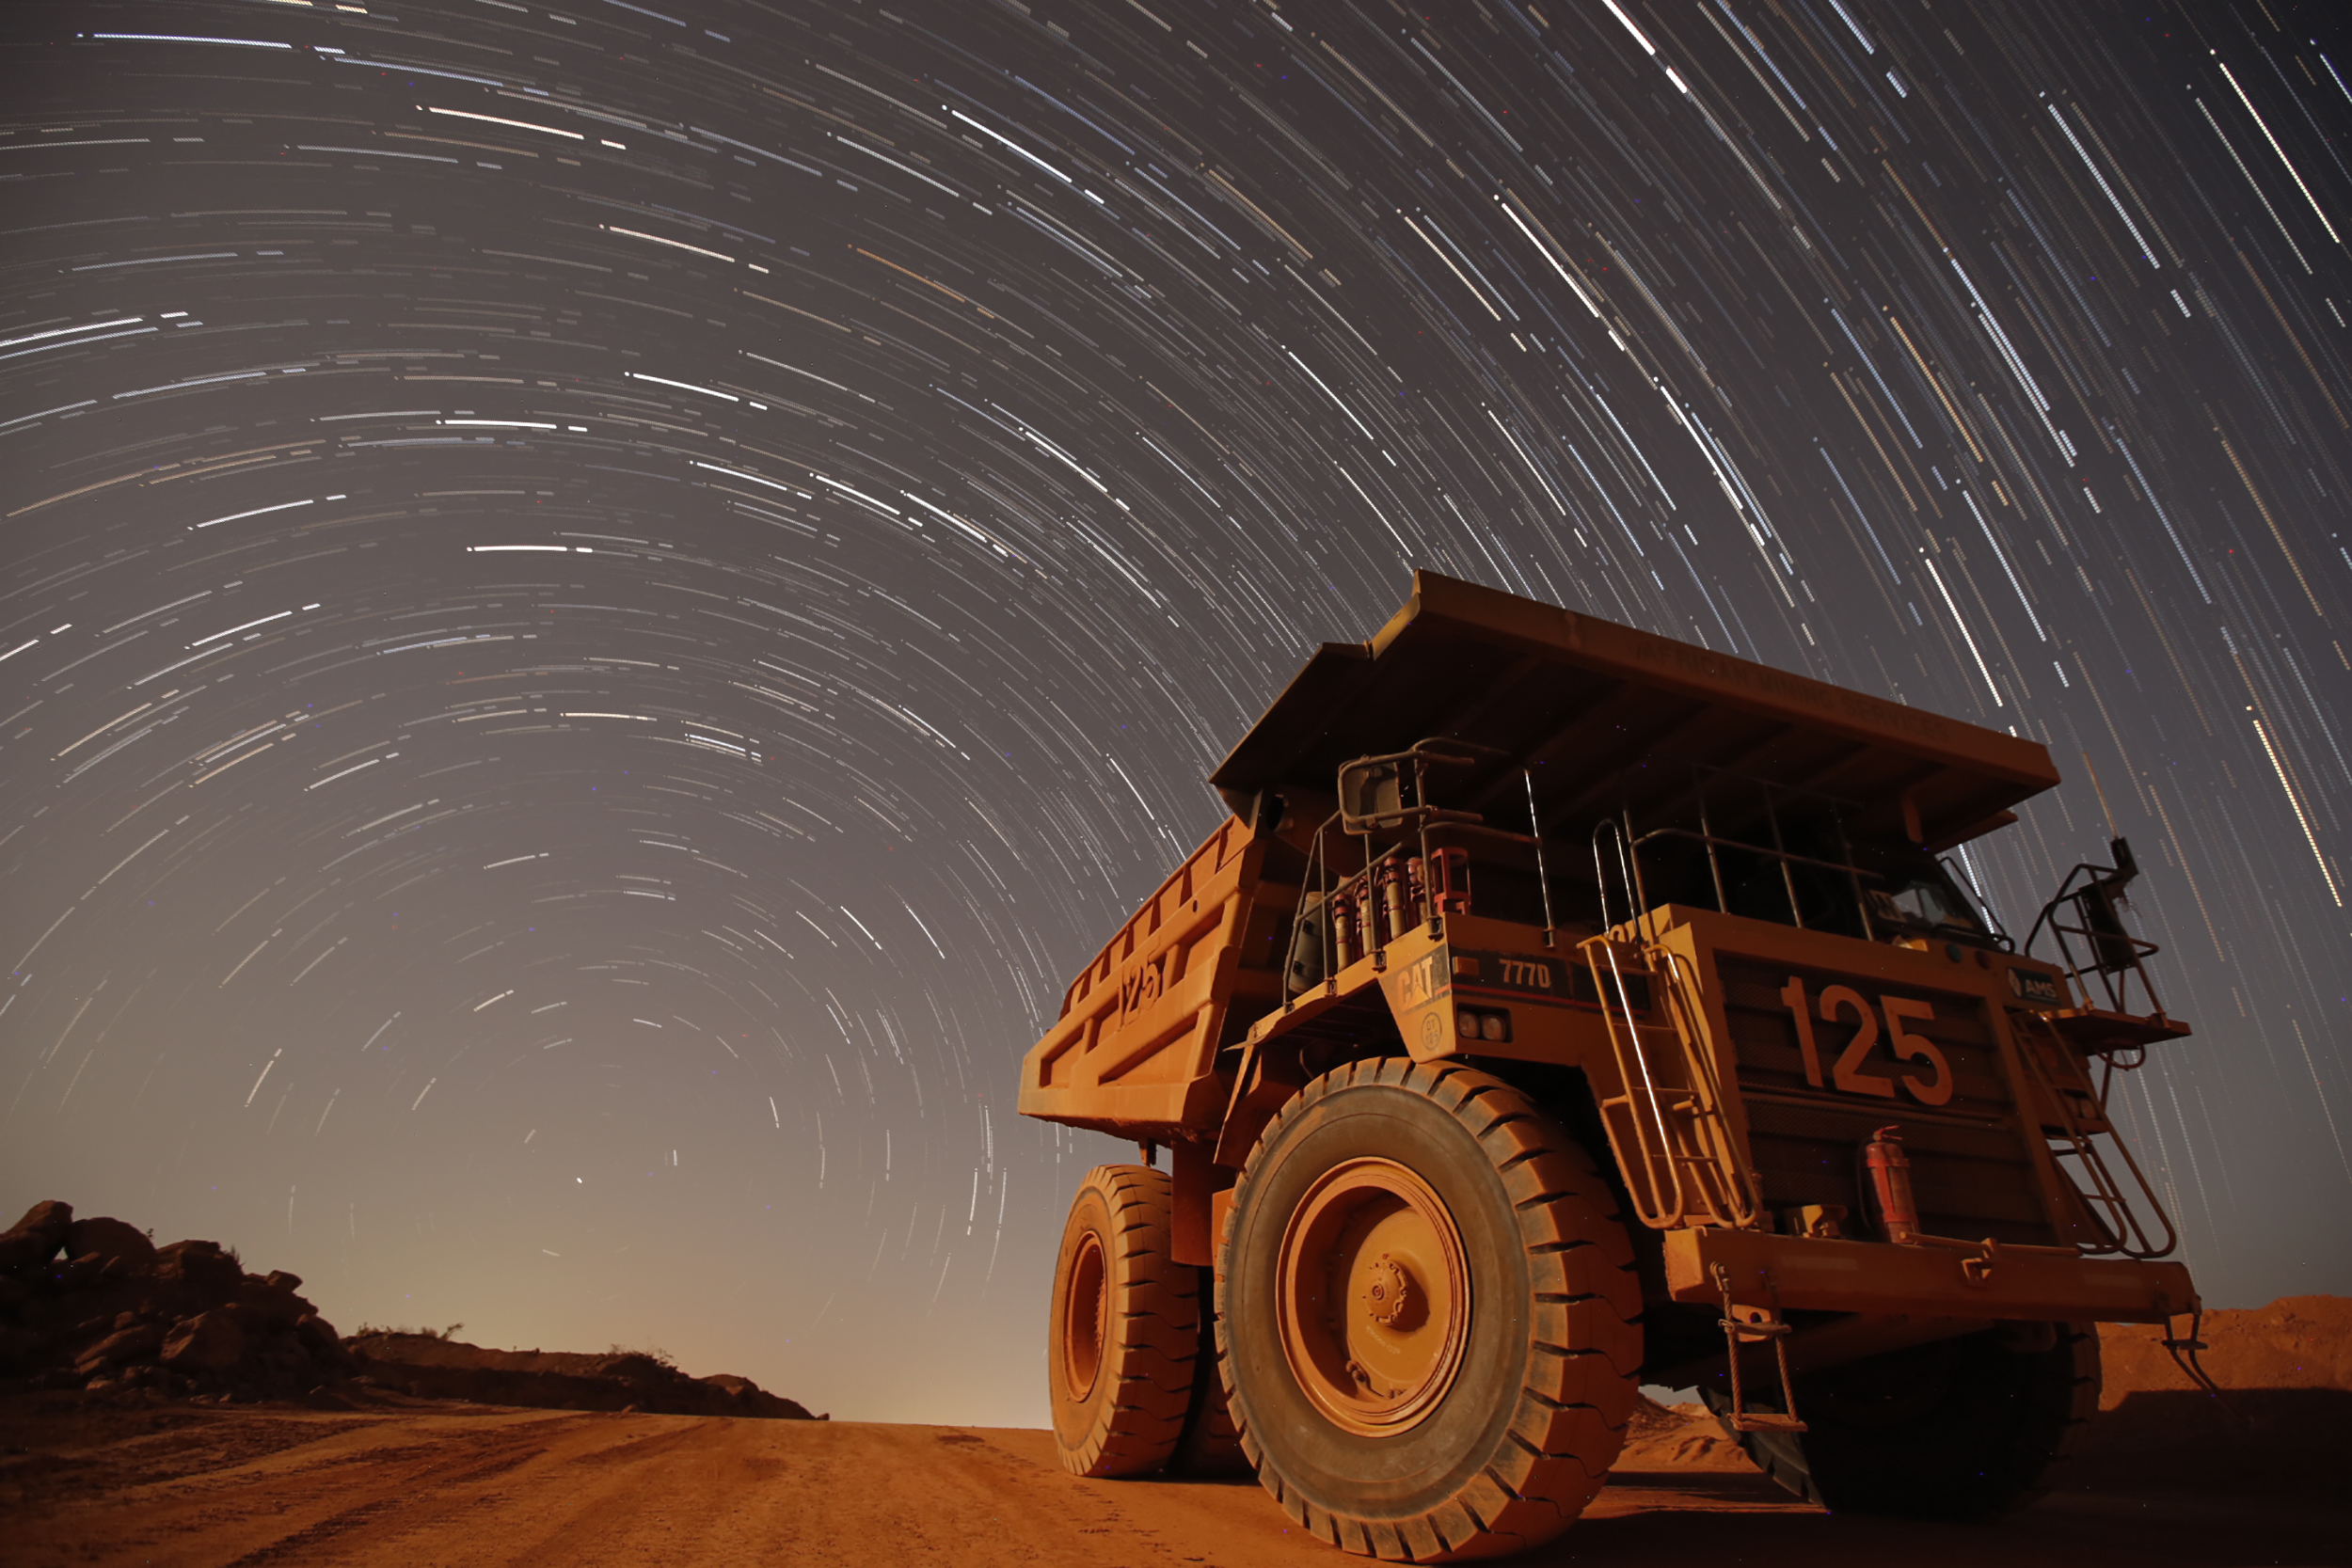 Star Trail, Siguiri Gold Project, Guinea, 2016. Edition of 3.